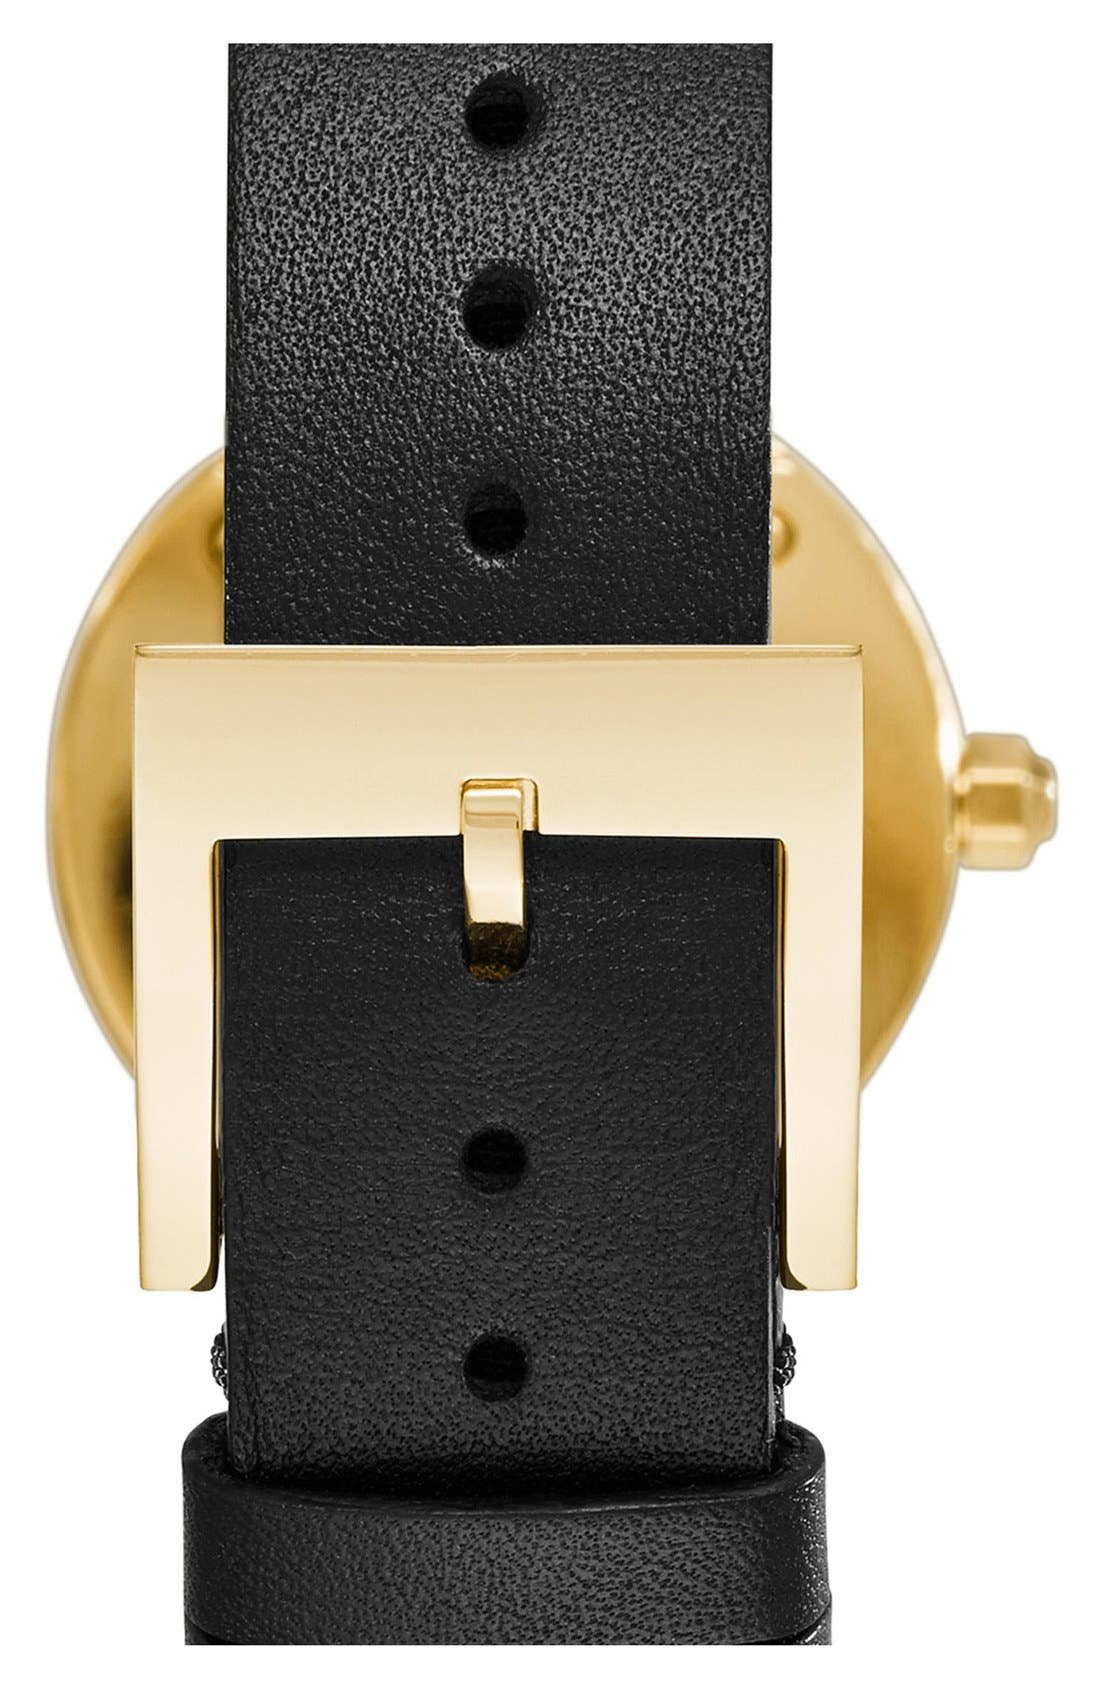 TORY BURCH,                             'Reva' Logo Dial Leather Strap Watch, 28mm,                             Alternate thumbnail 4, color,                             002